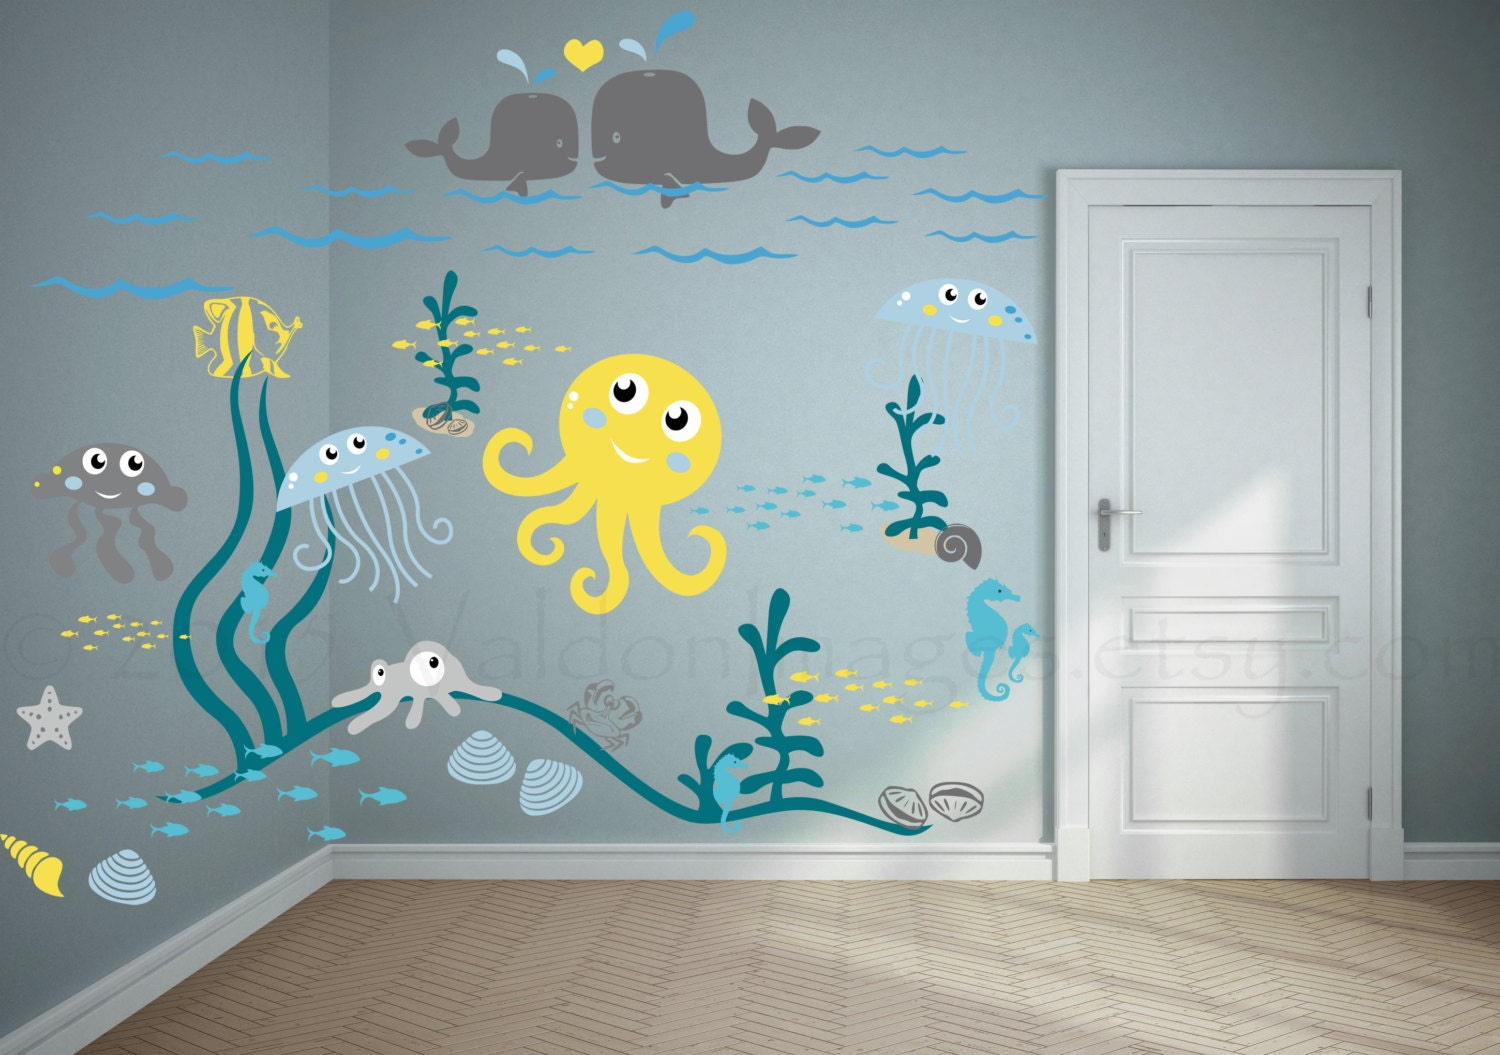 Nursery Wall Decor Jellyfish Adventure Wall Decal Nursery Wall Decal Kids